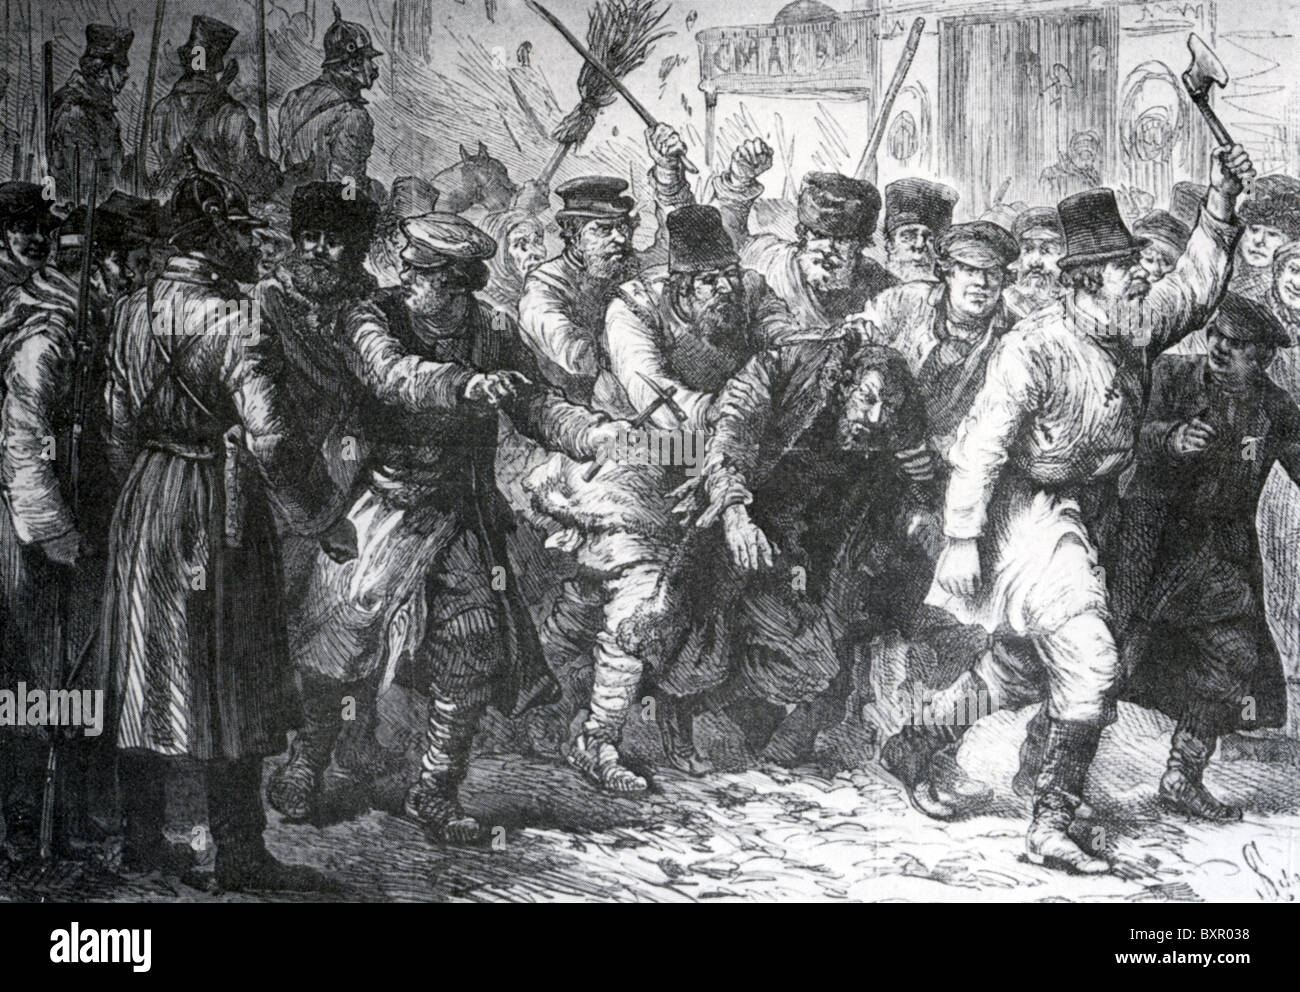 KIEV POGROM  1881 following assassination of Alexander II.  Mob rule takes over while soldiers stand by. - Stock Image